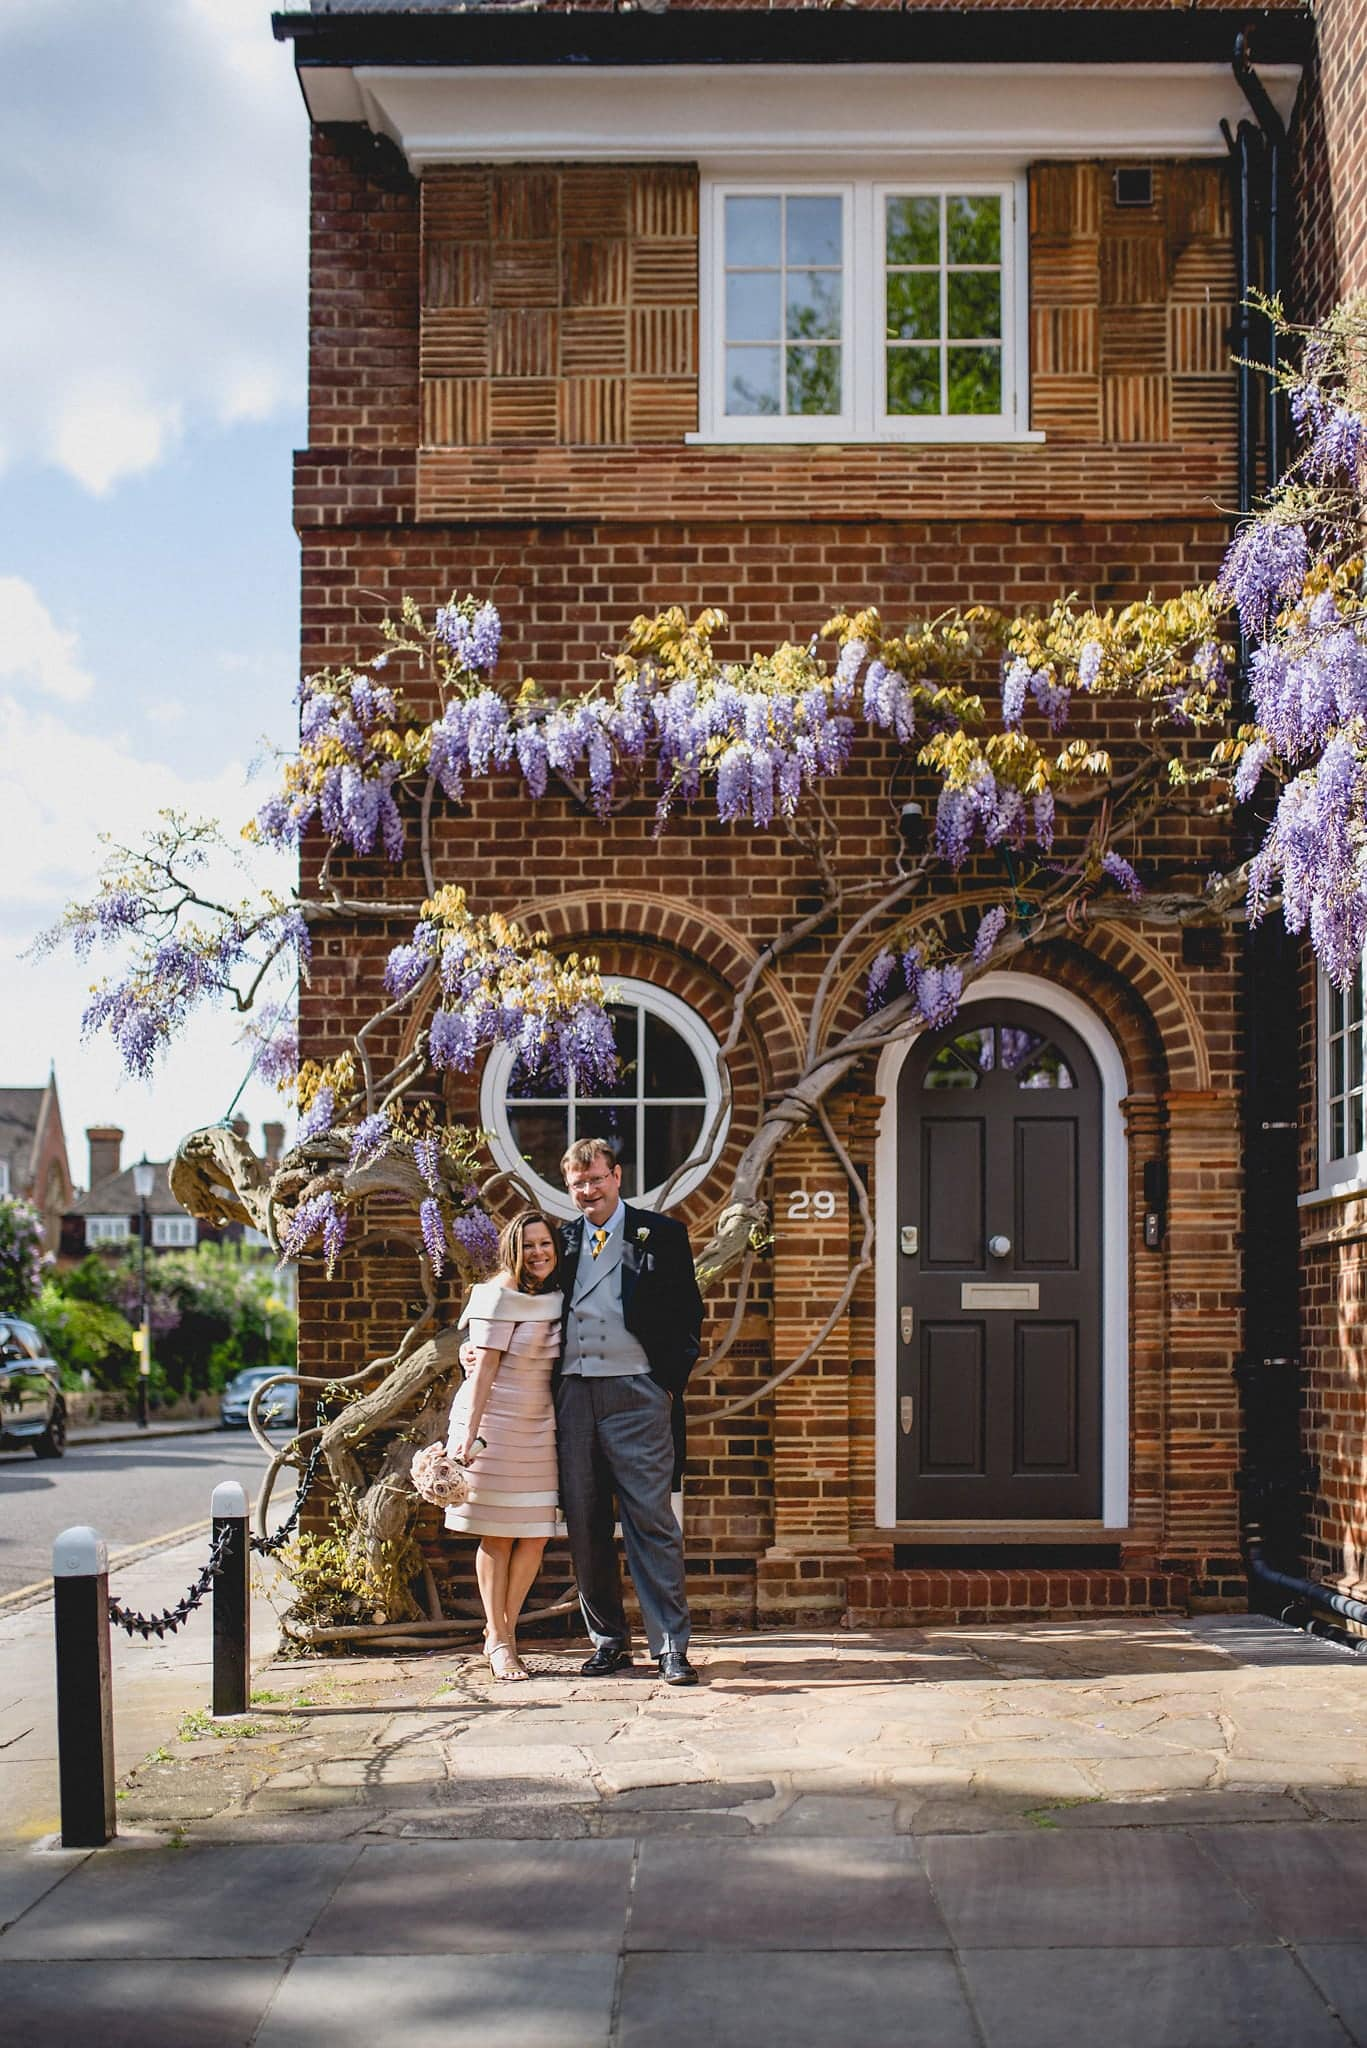 Bride and groom pose outside building draped in wisteria